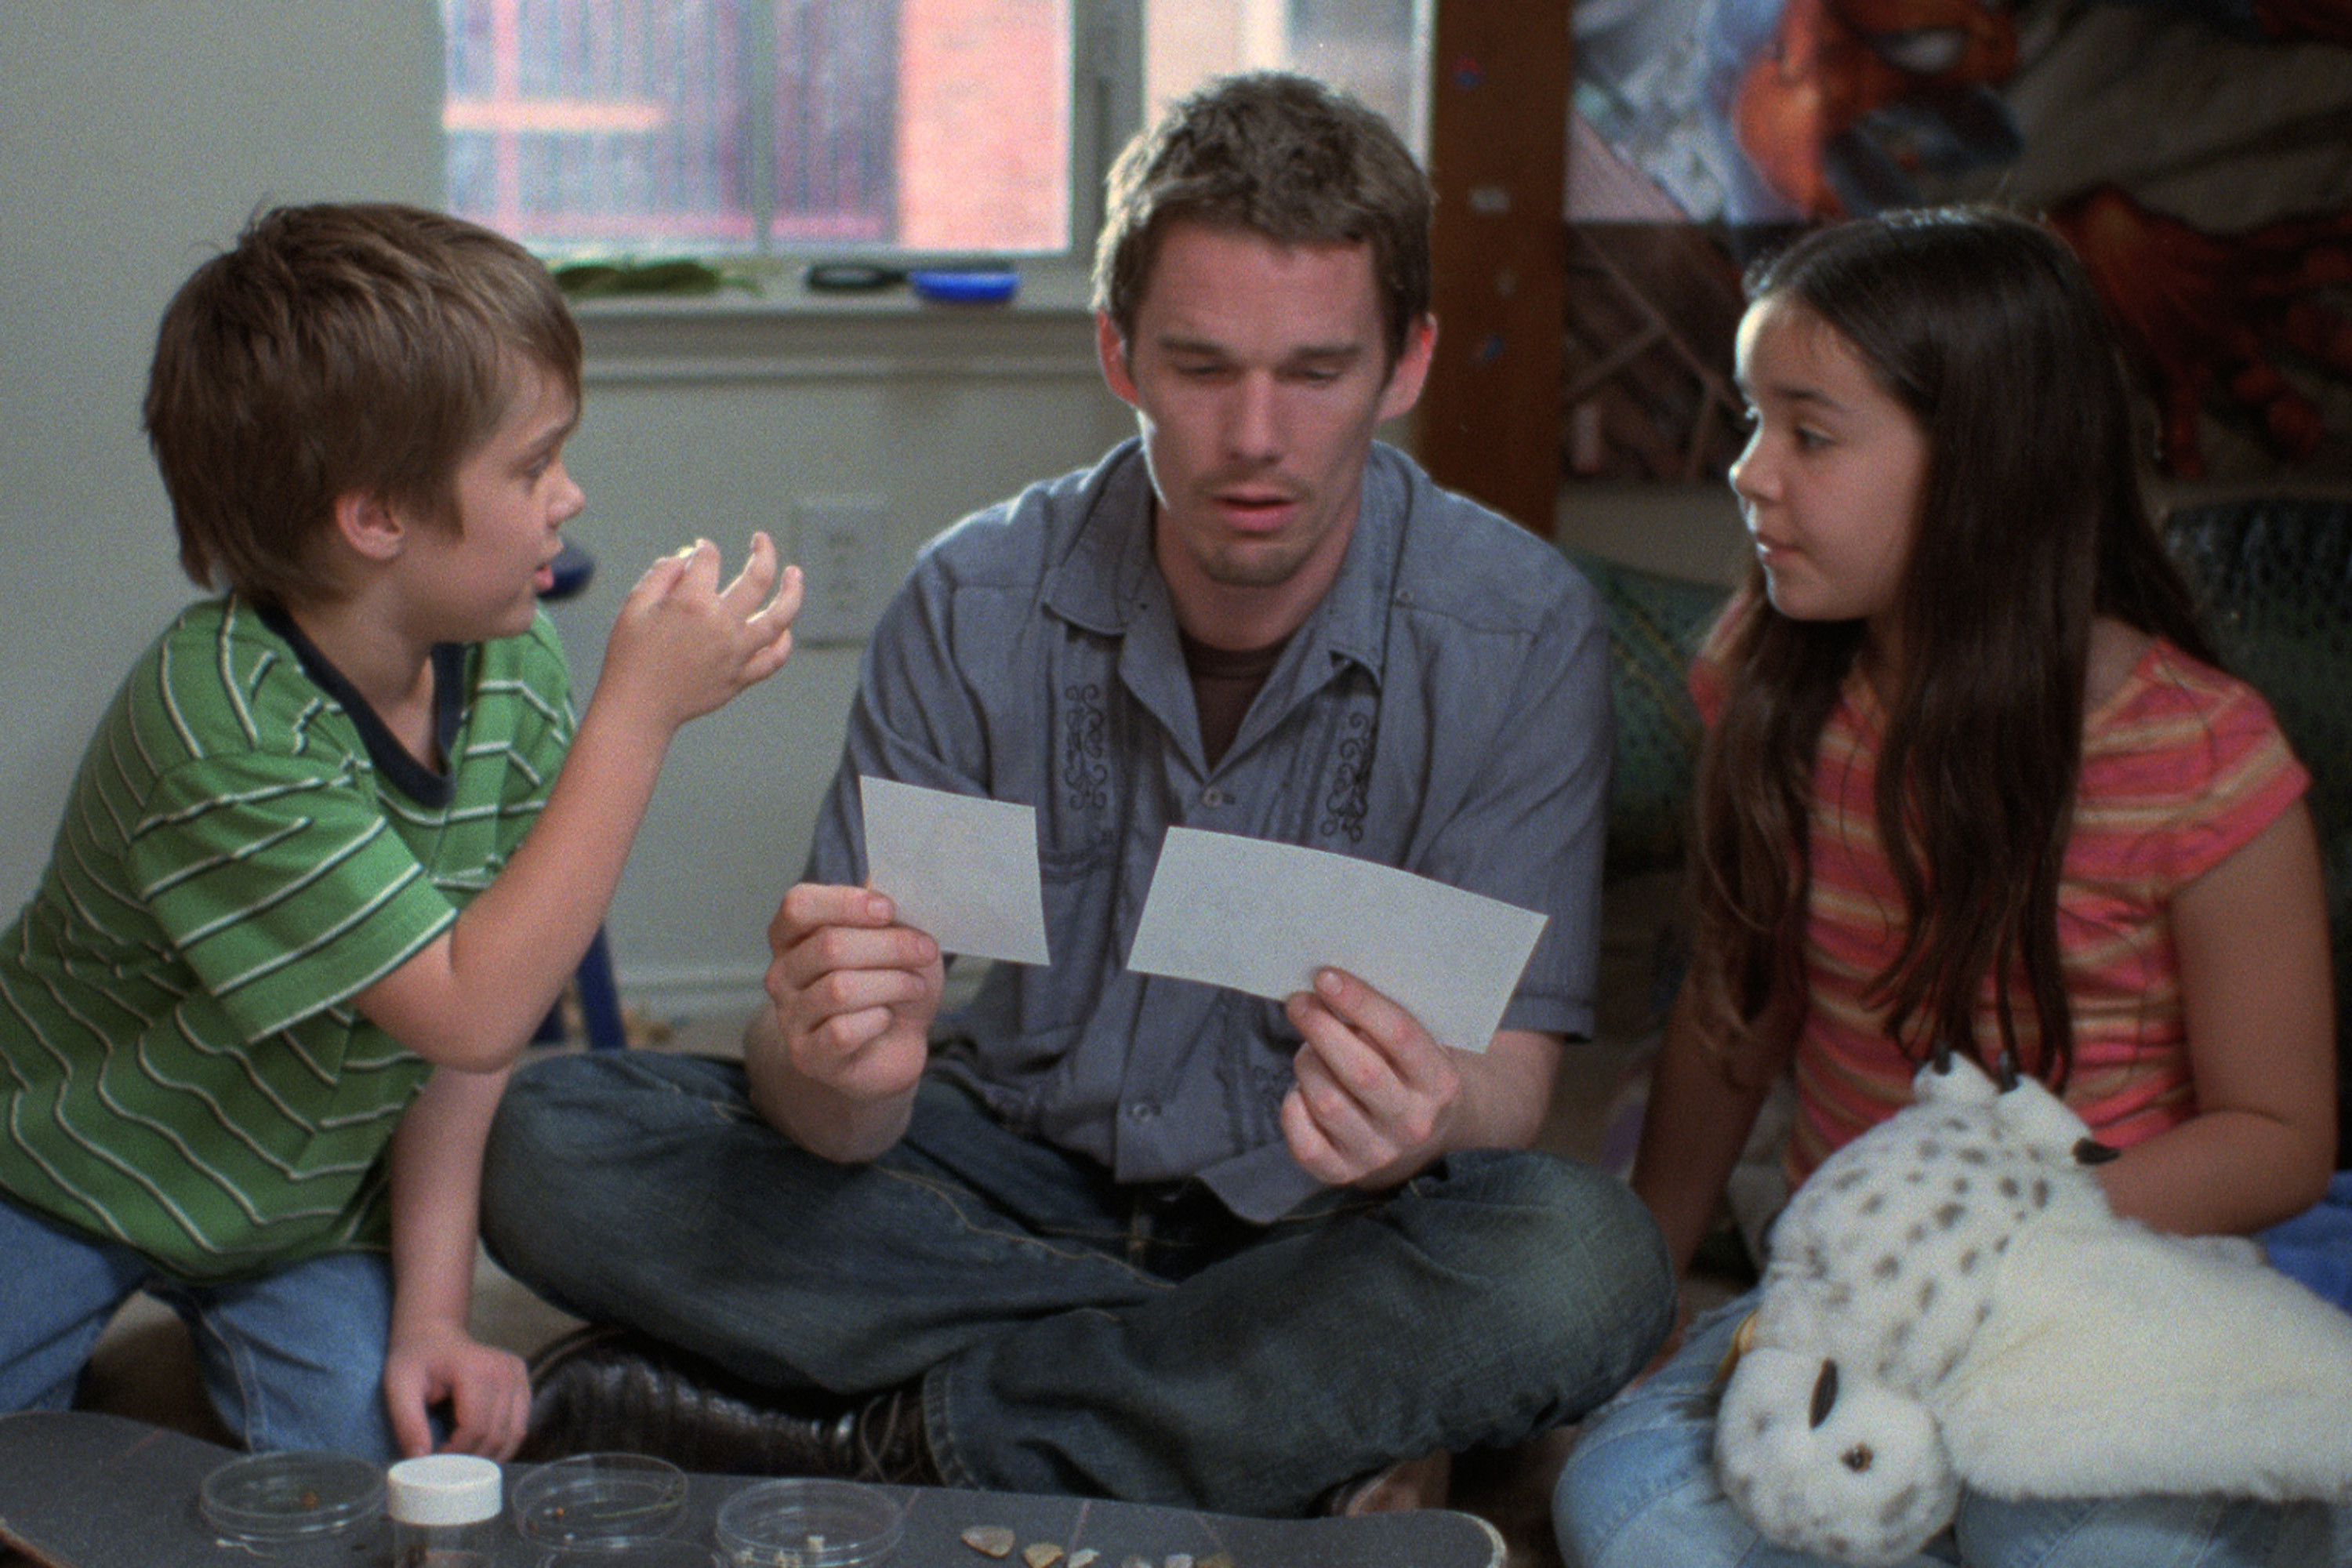 Ethan Hawke and the young cast members in Richard Linklater's 'Boyhood'